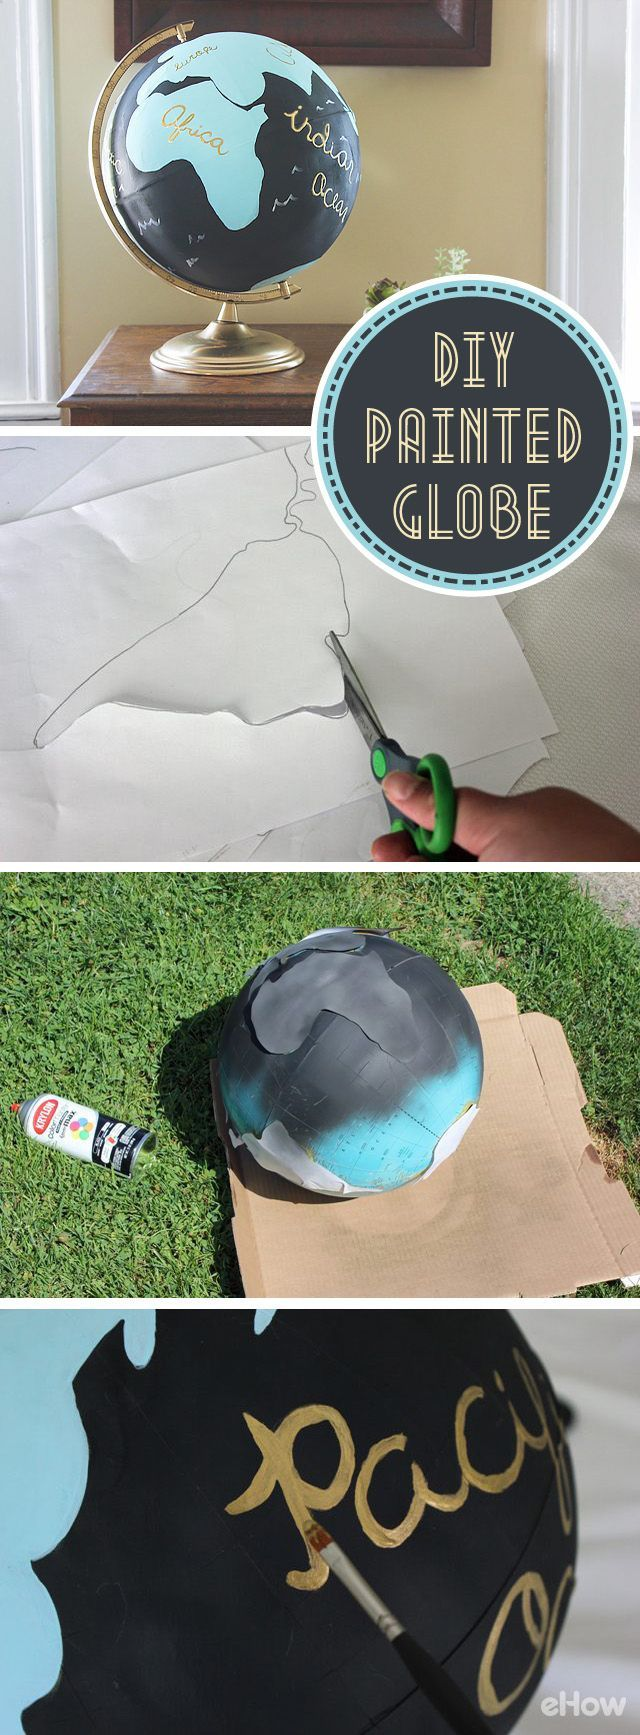 In LOVE with this upcycle decor piece! Transform an ordinary globe into a breathtaking piece of artwork in just a few easy steps. Inspired by Anthropologie's Handpainted Wanderlust Globe, this DIY painted globe offers an affordable alternative to add worldly elegance to your home. http://www.ehow.com/how_12341081_diy-painted-globe-with-templates.html?utm_source=pinterest.com&utm_medium=referral&utm_content=freestyle&utm_campaign=fanpage